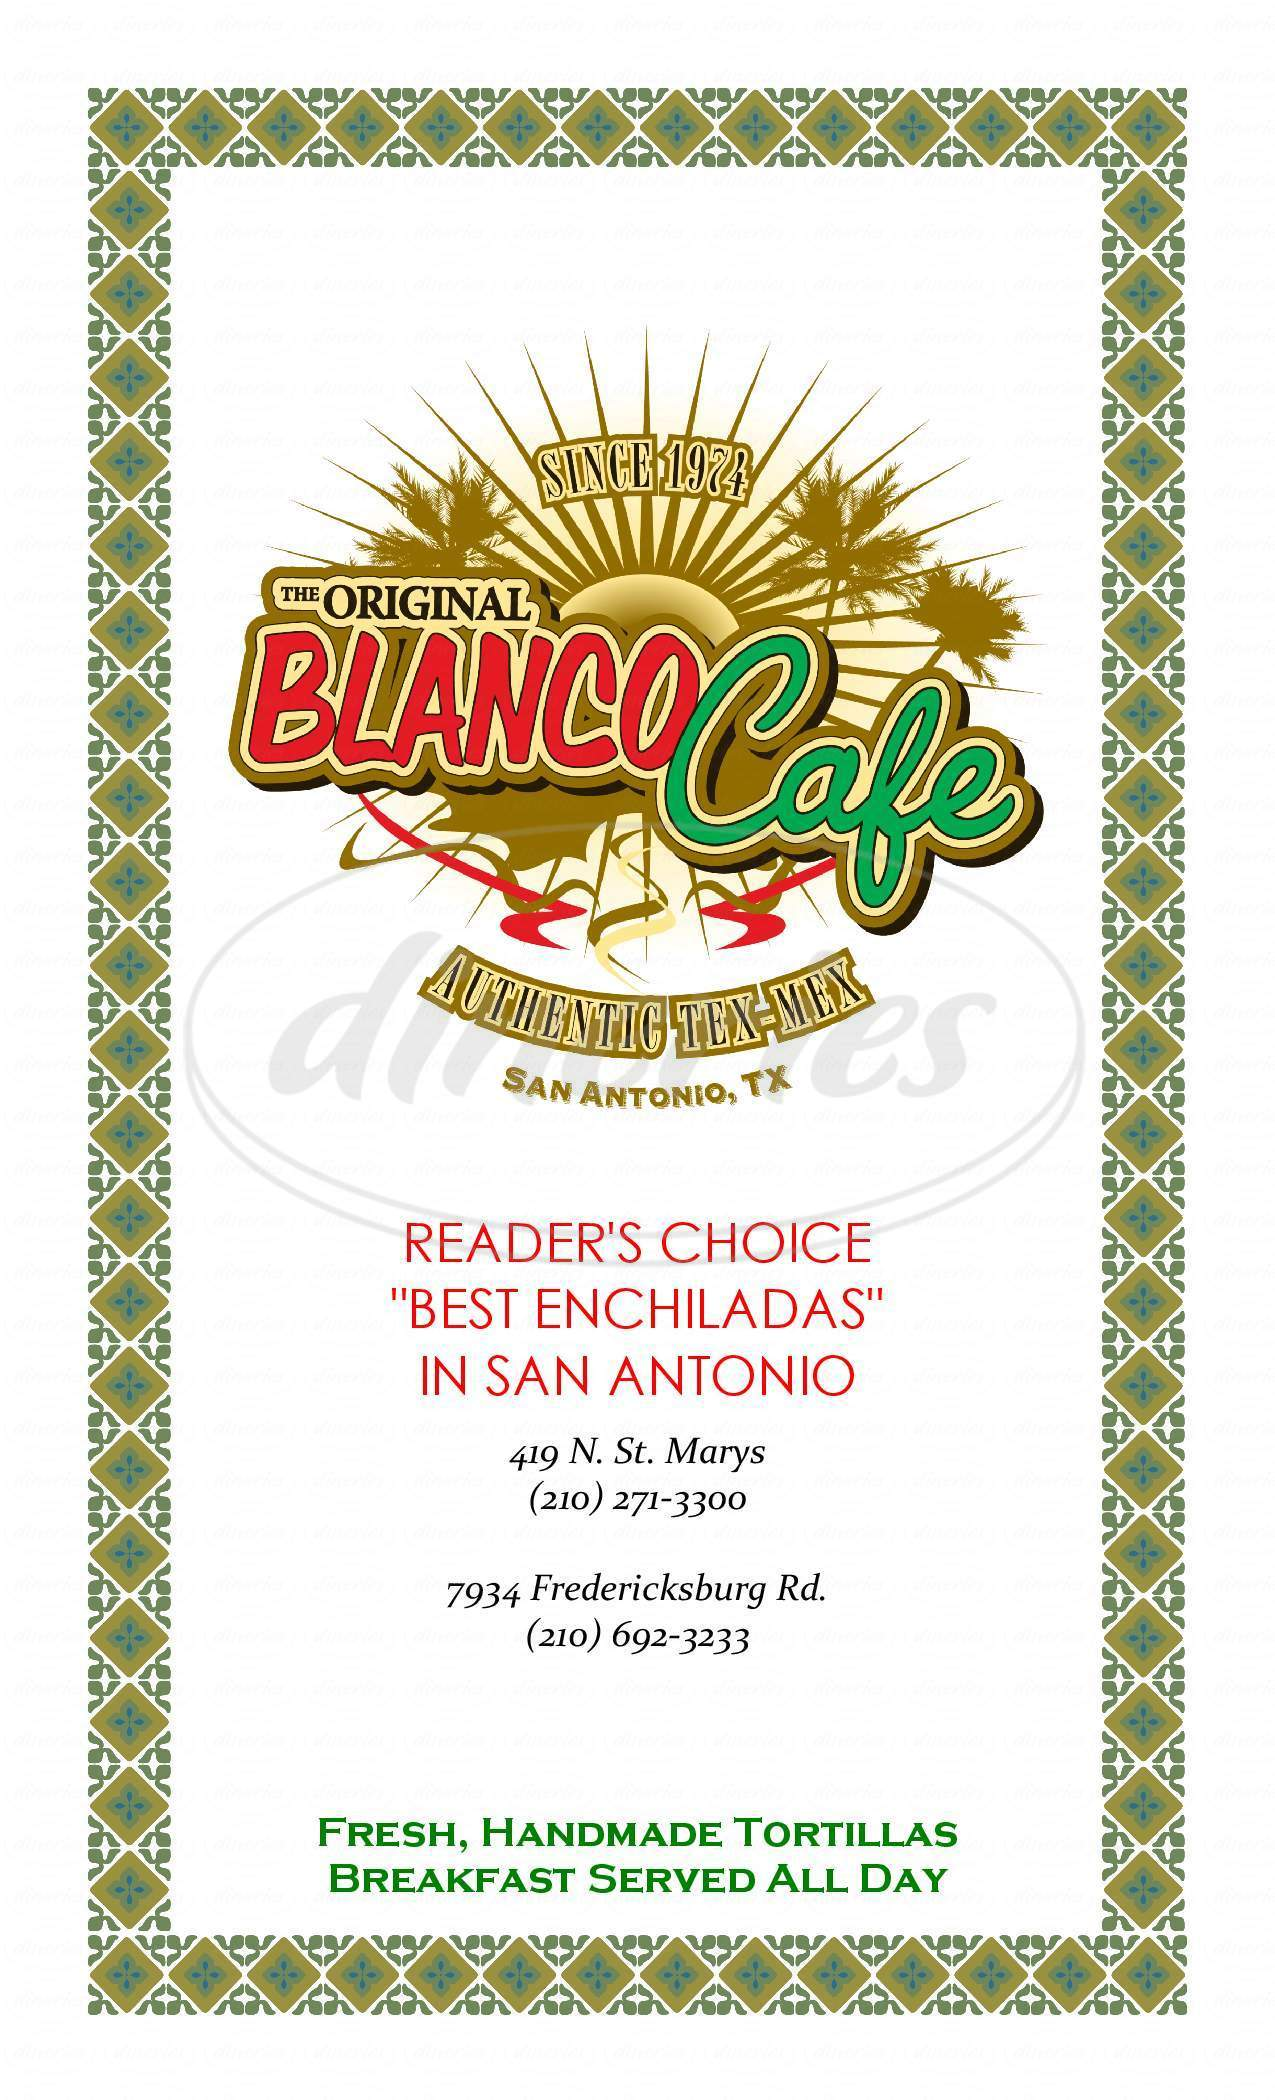 menu for The Original Blanco Cafe